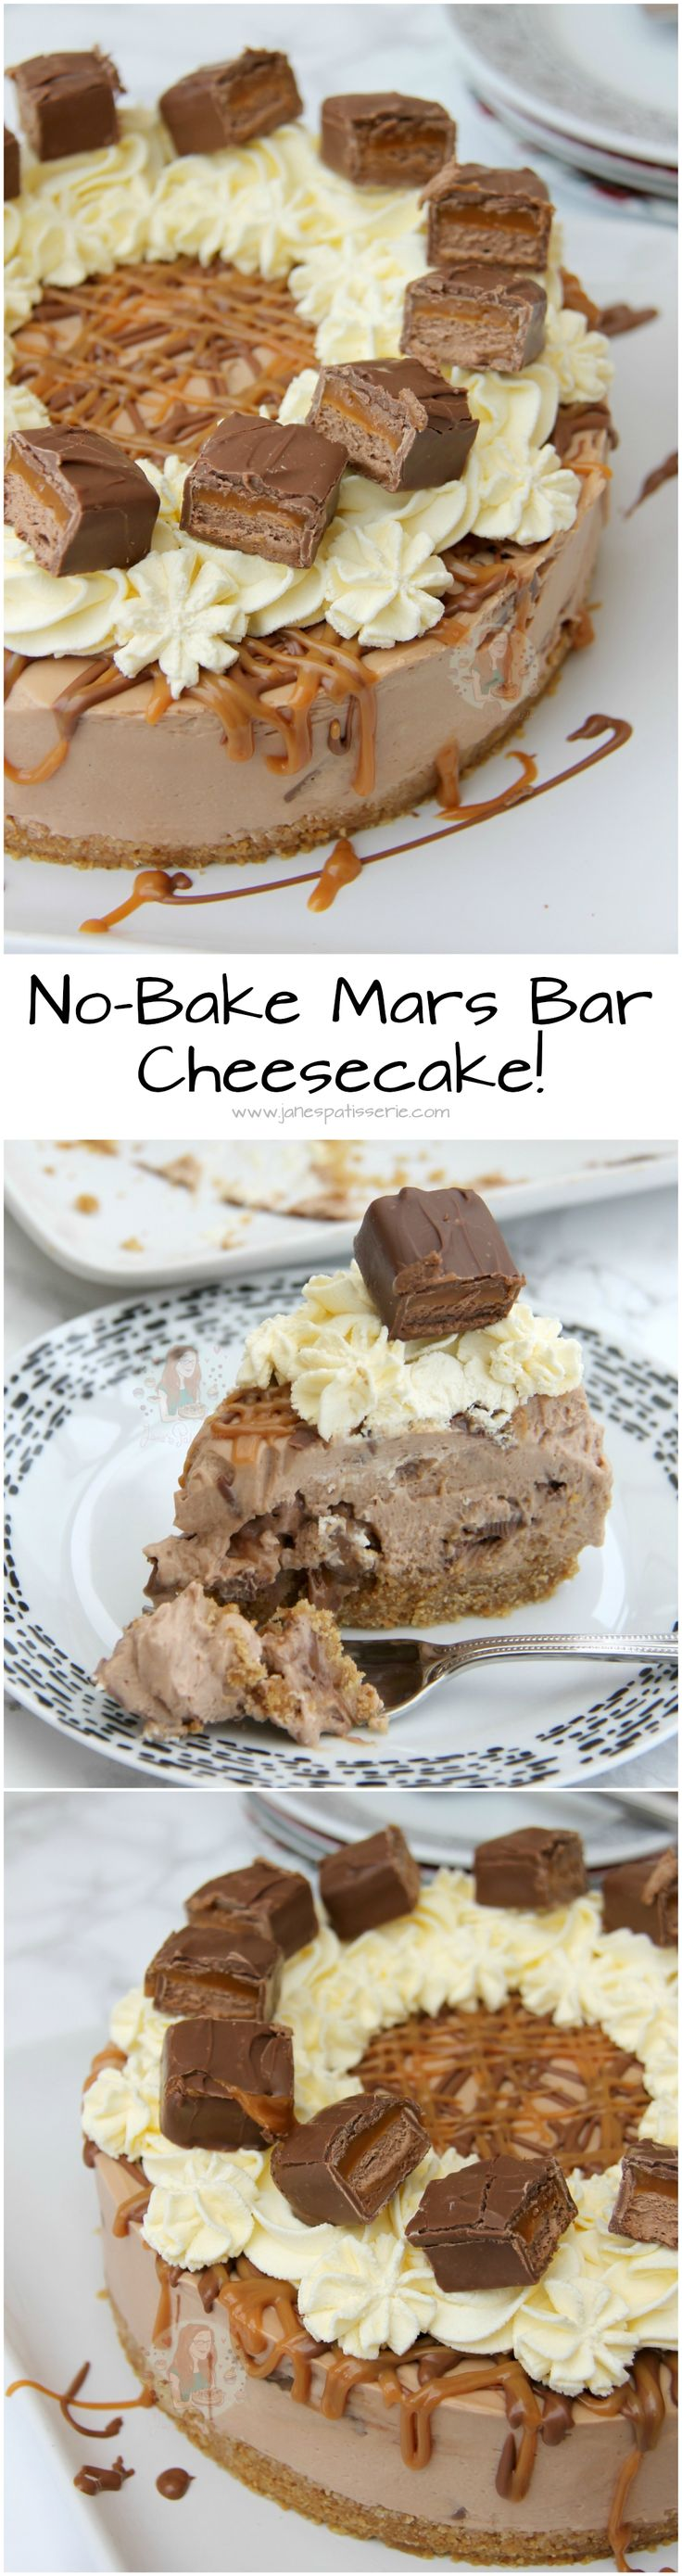 No-Bake Mars Bar Cheesecake! ❤️ Chocolate & Caramel Cheesecake Filling…